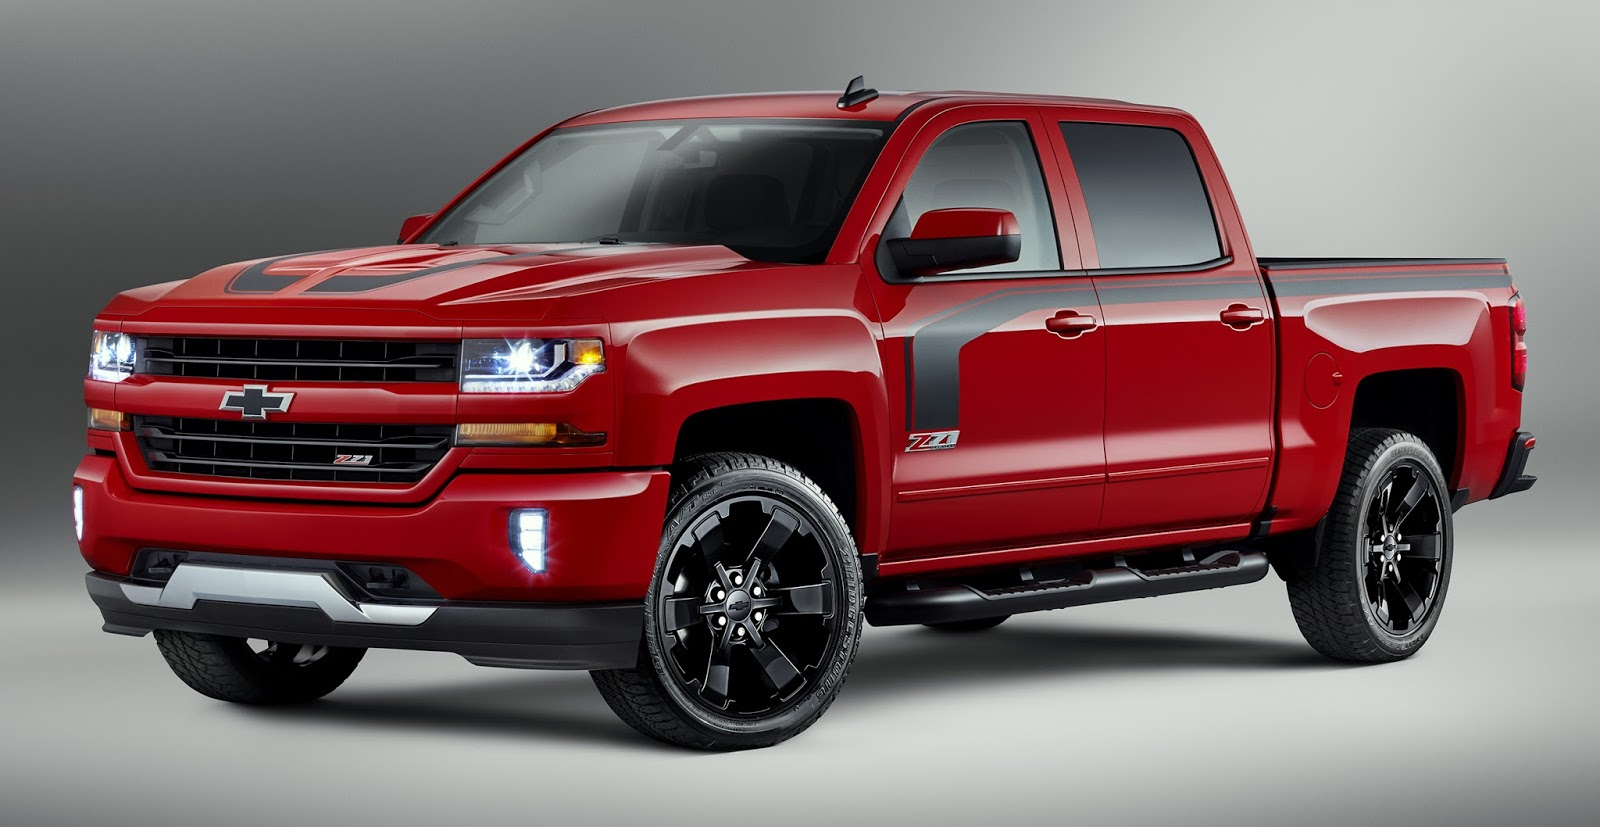 chevrolet highlights 2016 silverado special editions including new rally edition. Black Bedroom Furniture Sets. Home Design Ideas